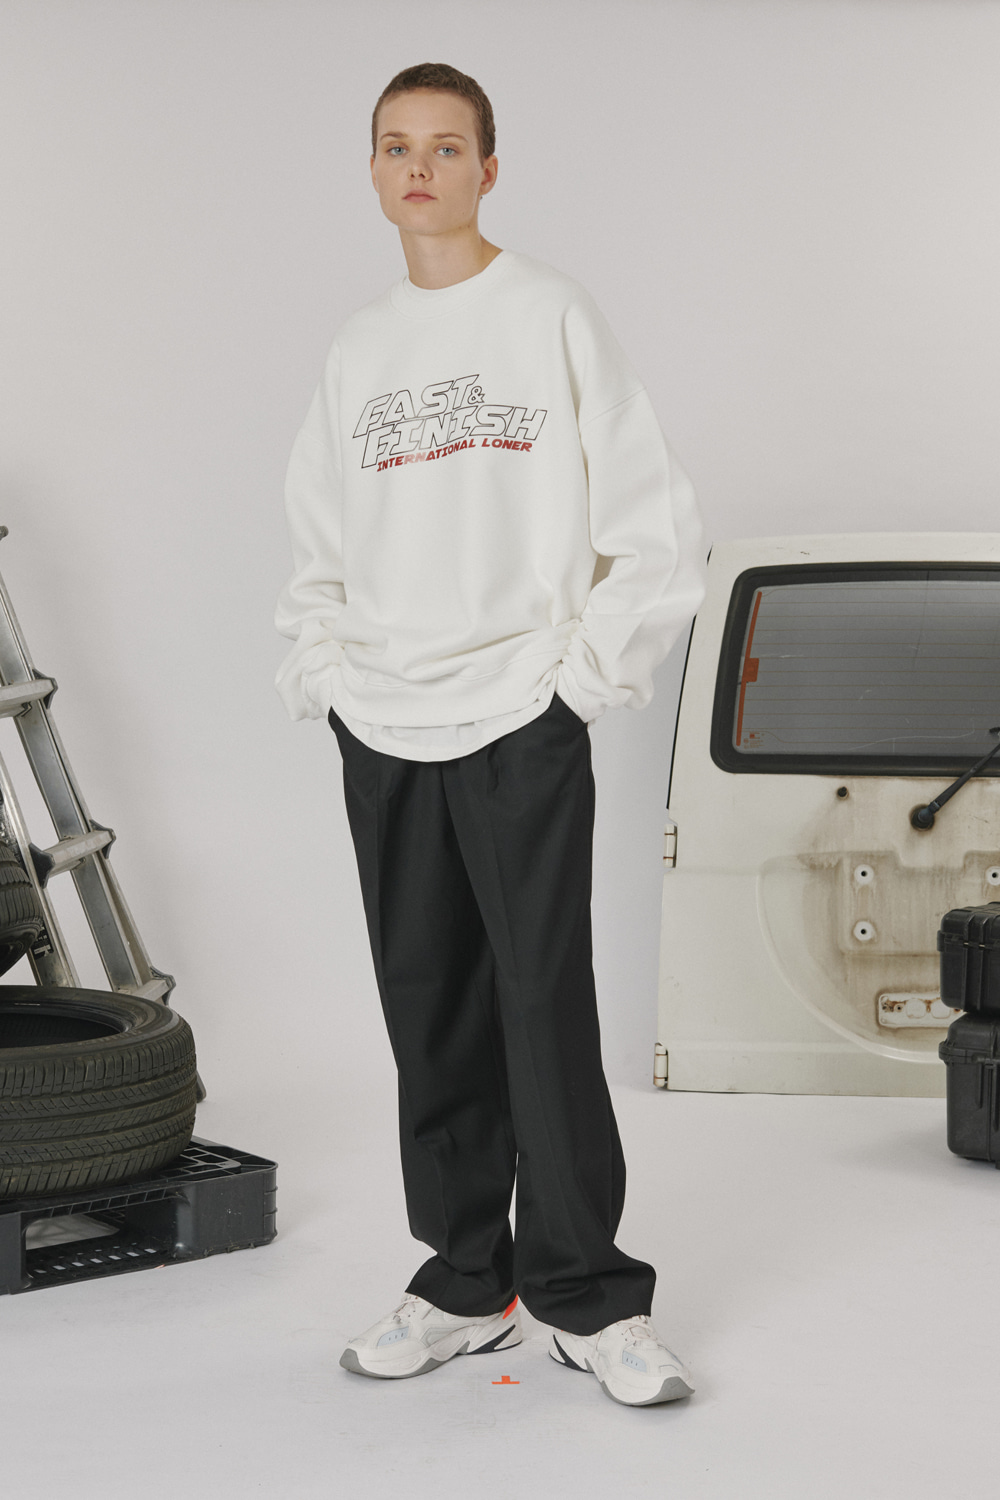 [LONER SEASON OFF SALE] Fast and finish sweatshirt - White (기간한정 04.03 - 04.09)